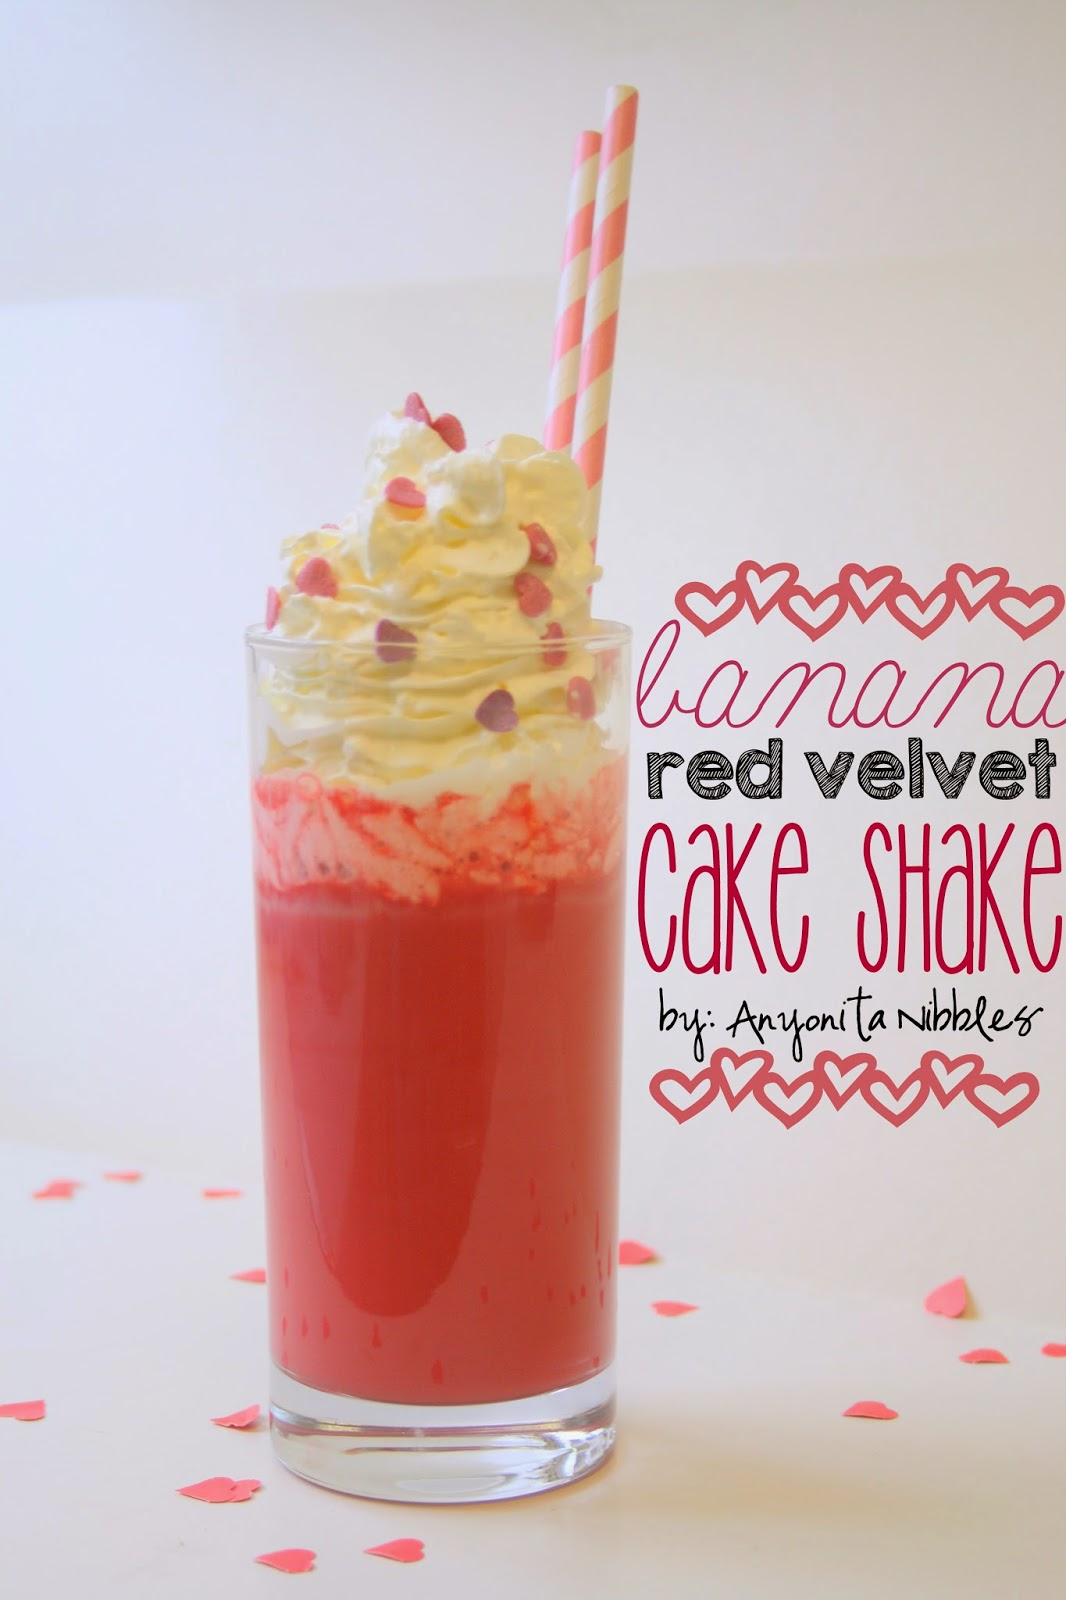 Chocolate Cake Shake Recipe